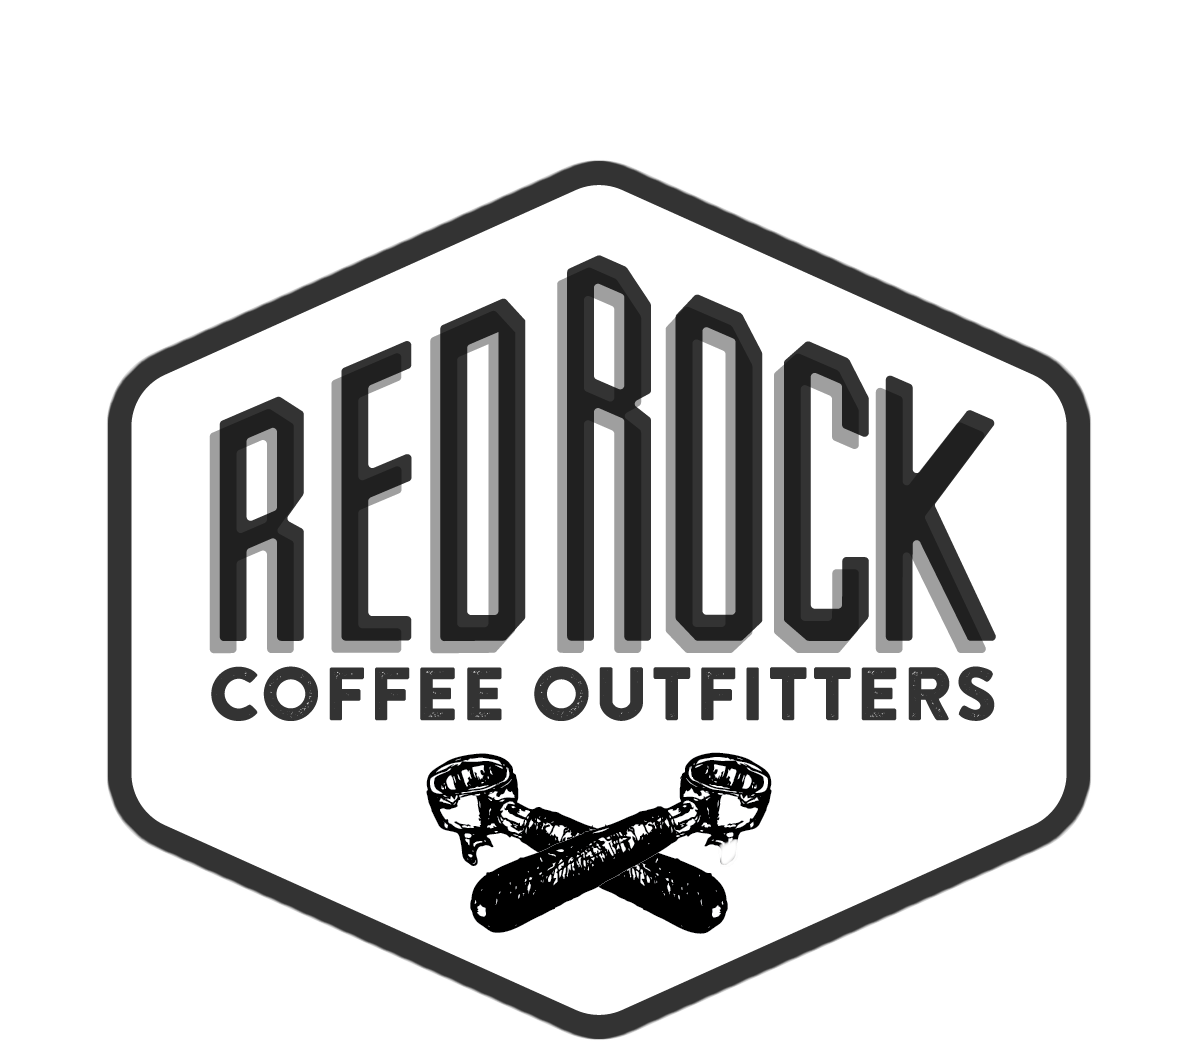 Red Rock Coffee Outfitters